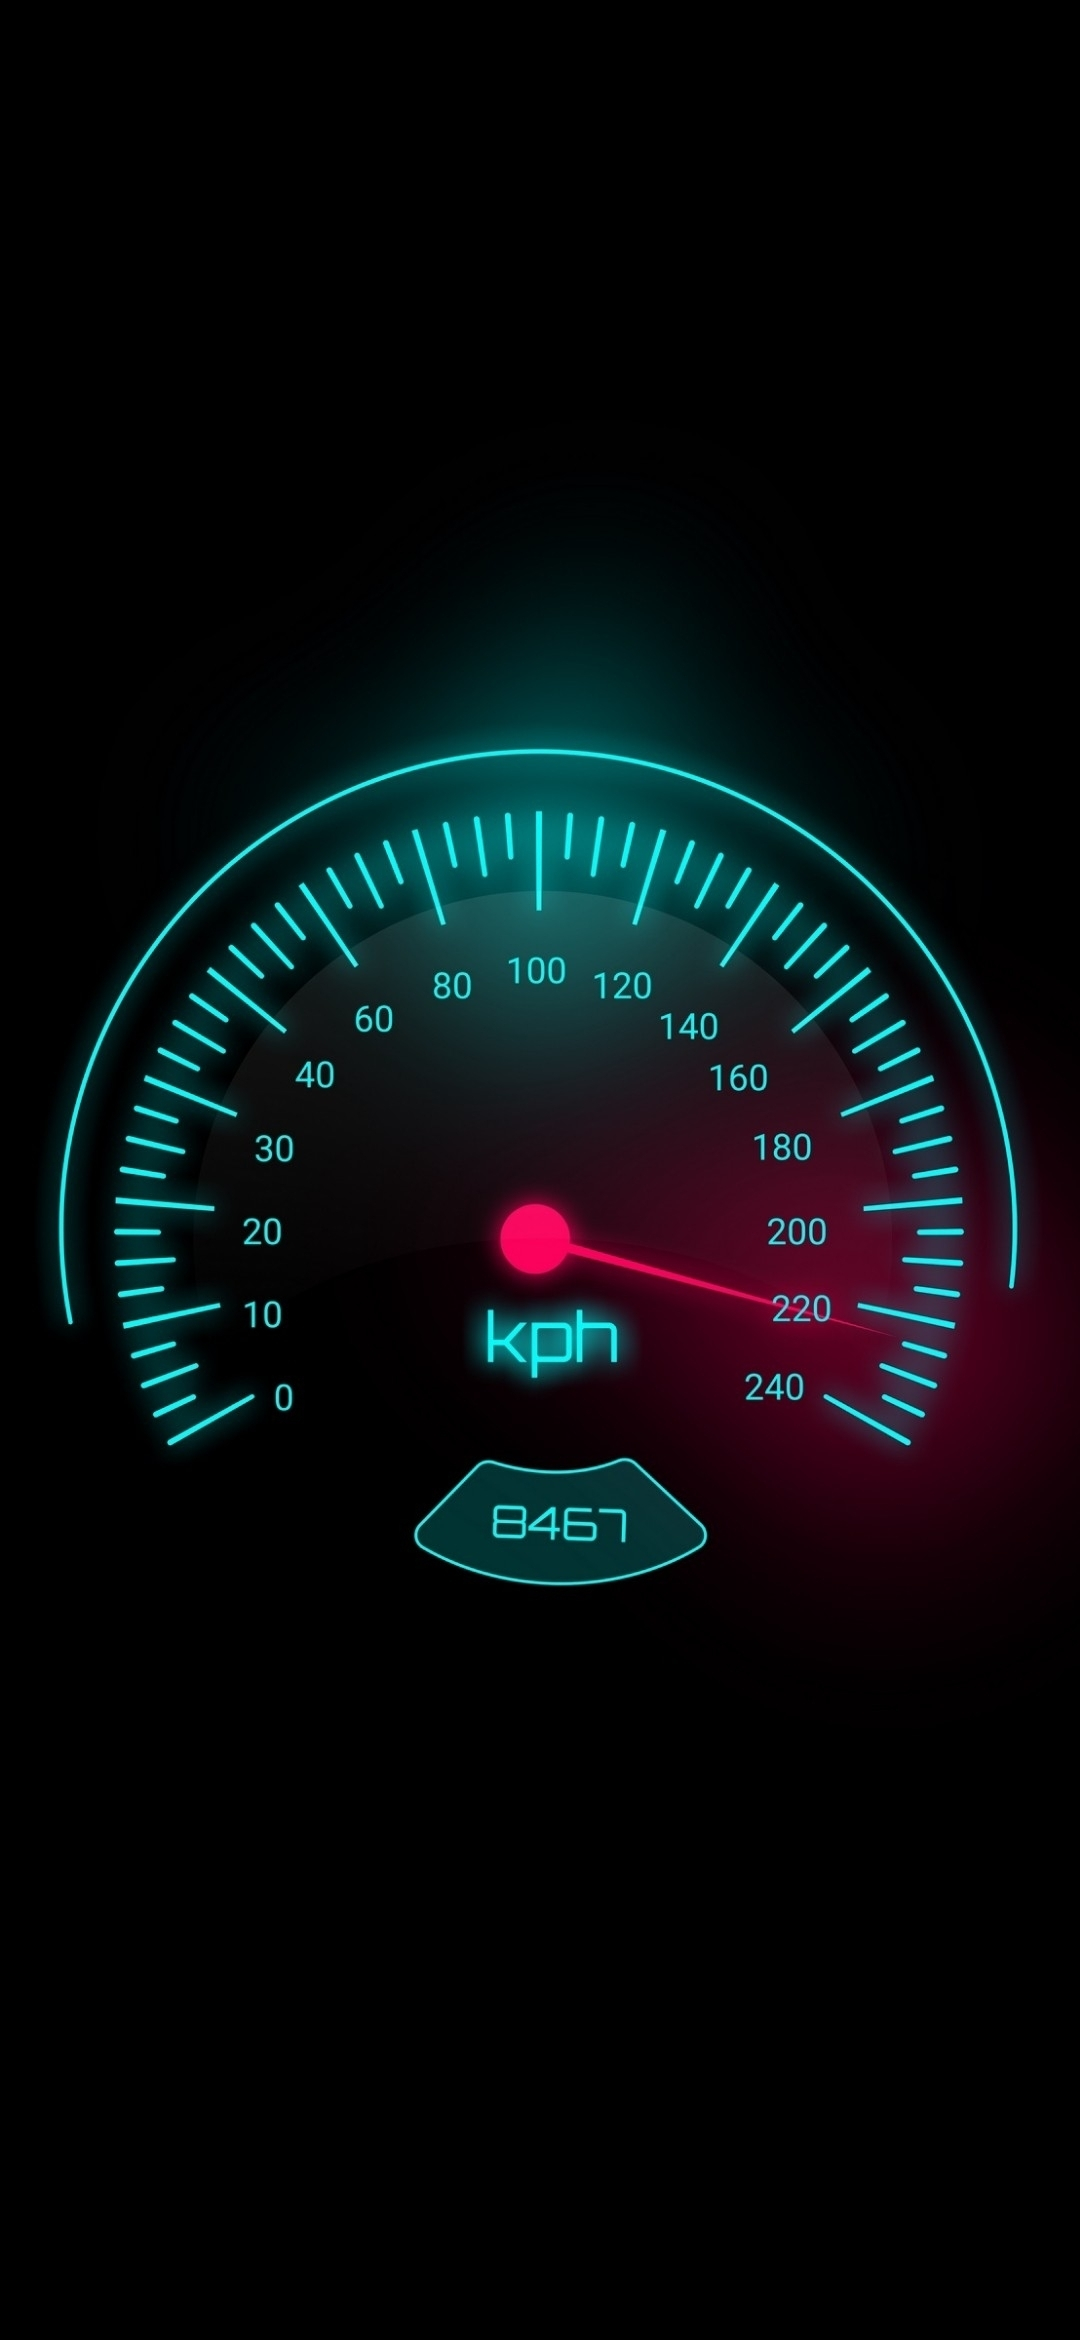 Car Speedometer at 220 kph